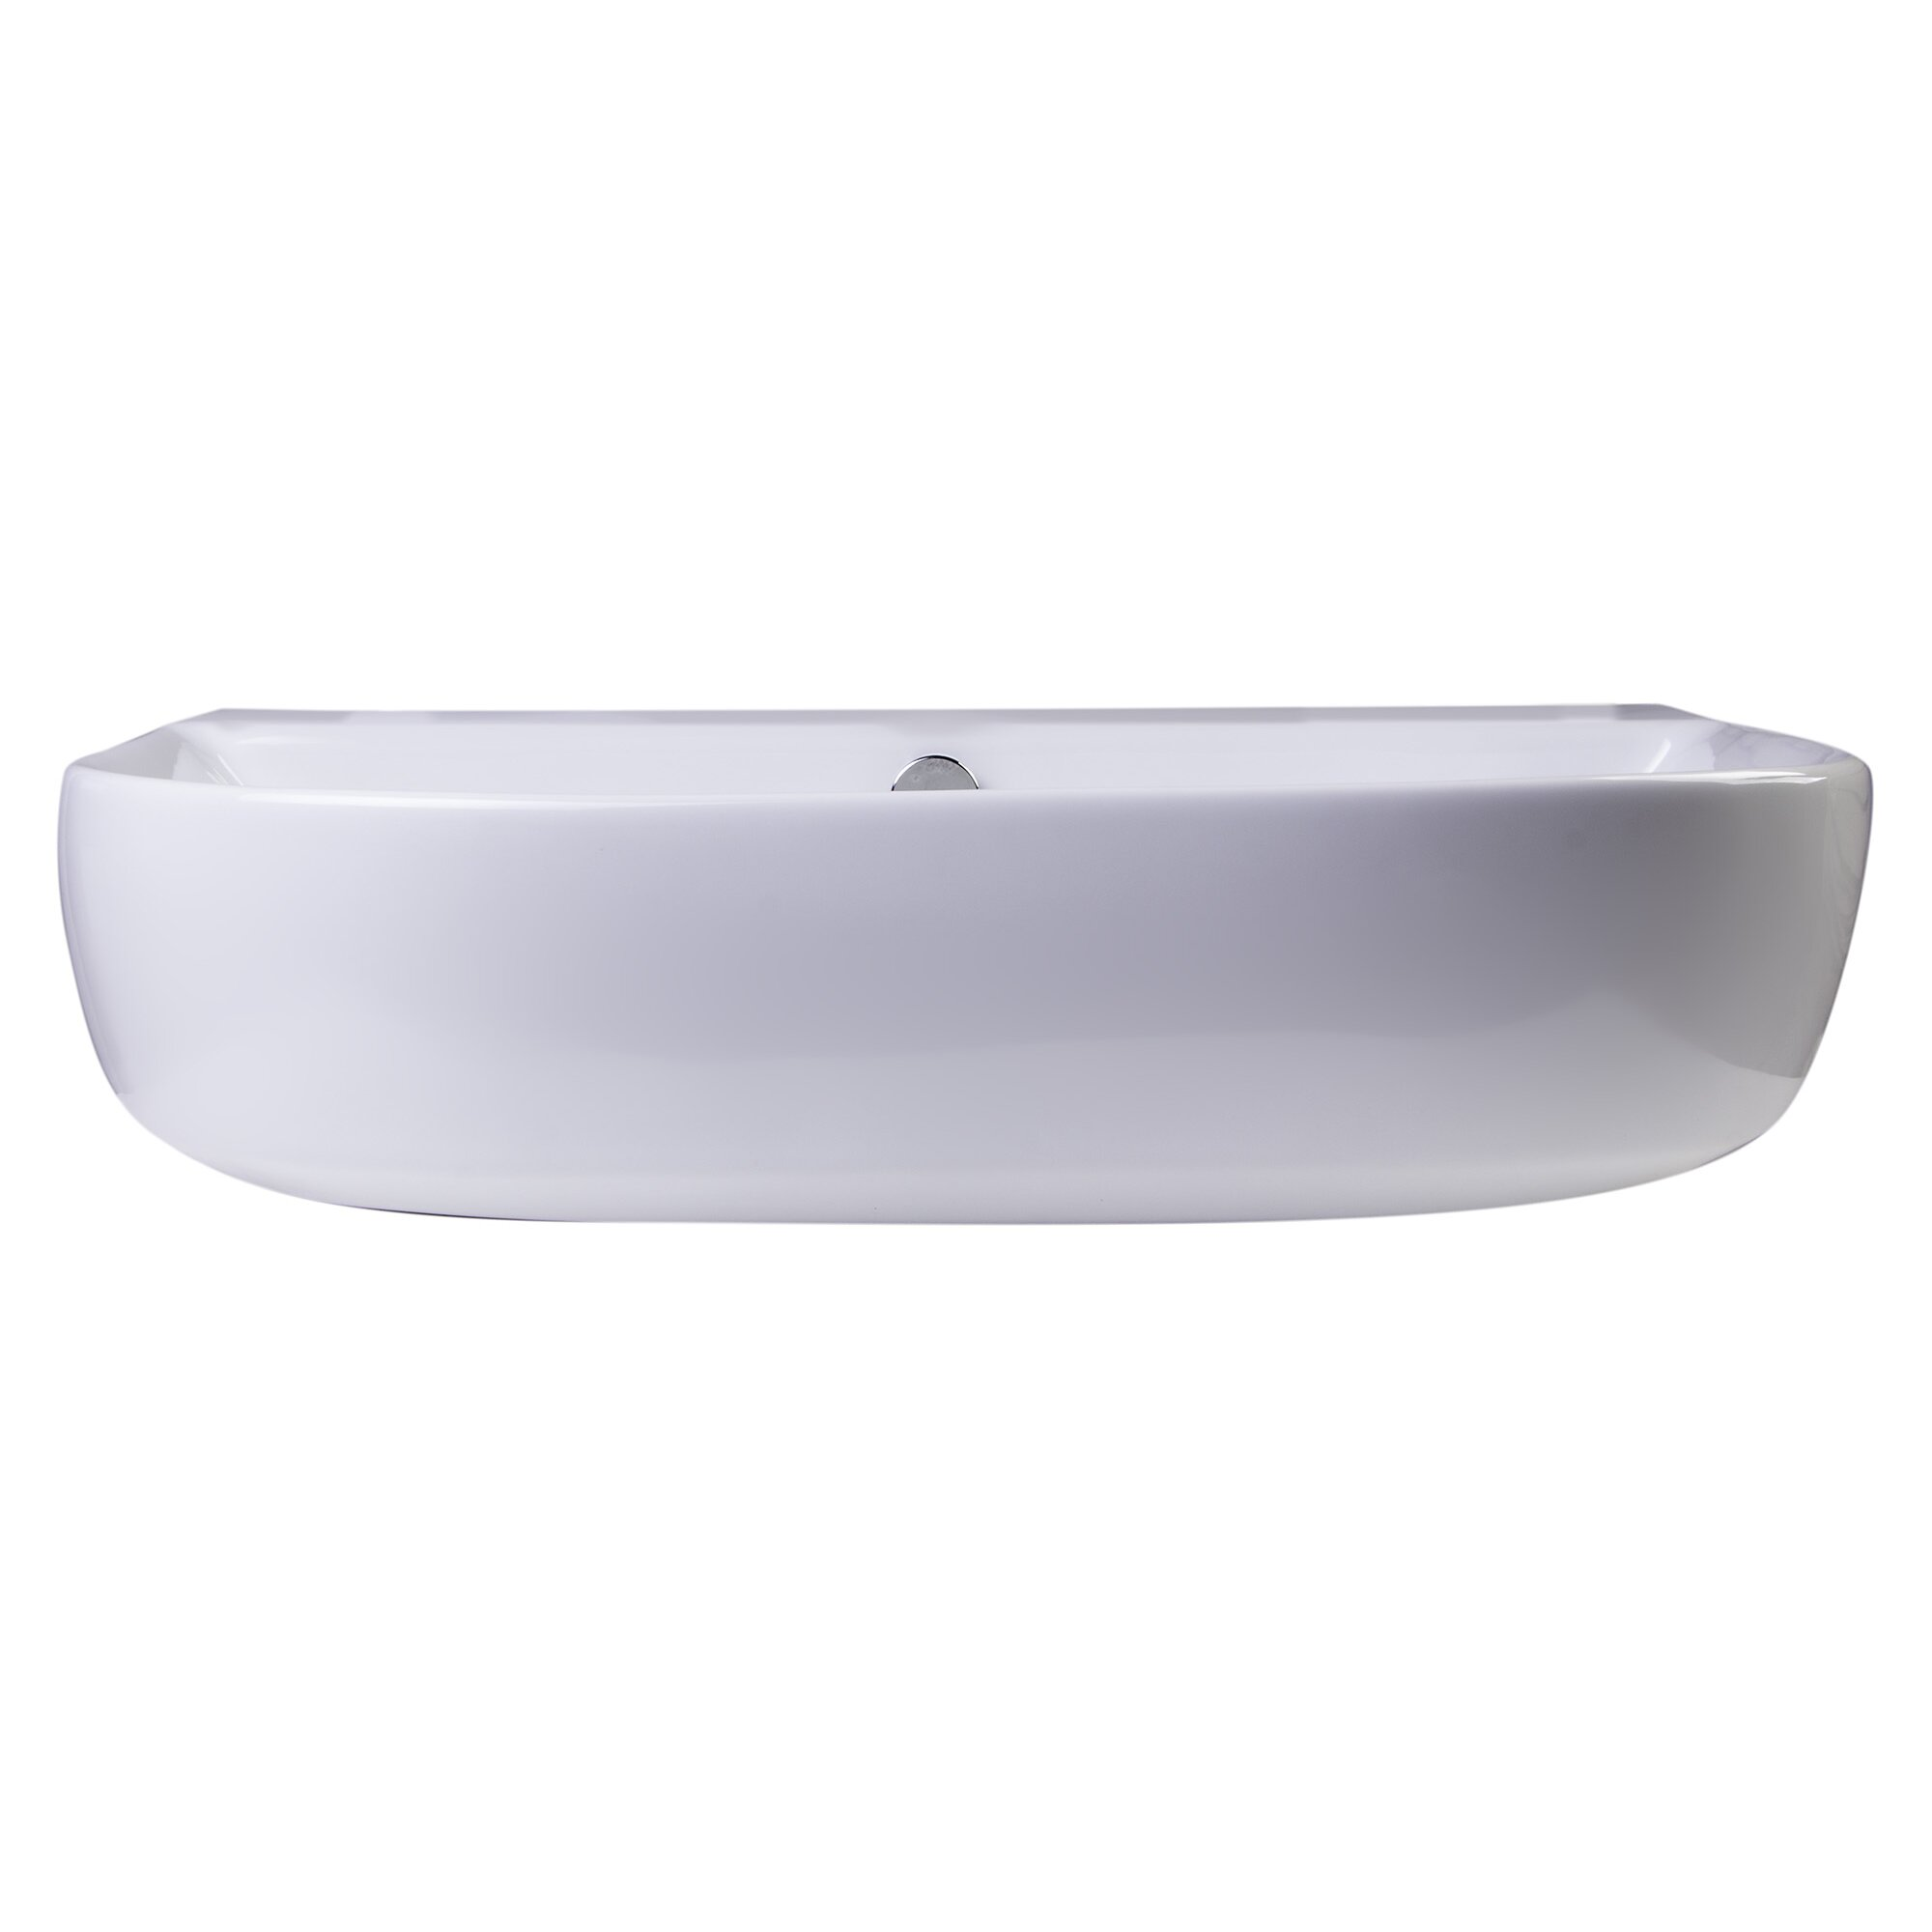 Bathroom Sinks Brands bathroom sink bran ~ befon